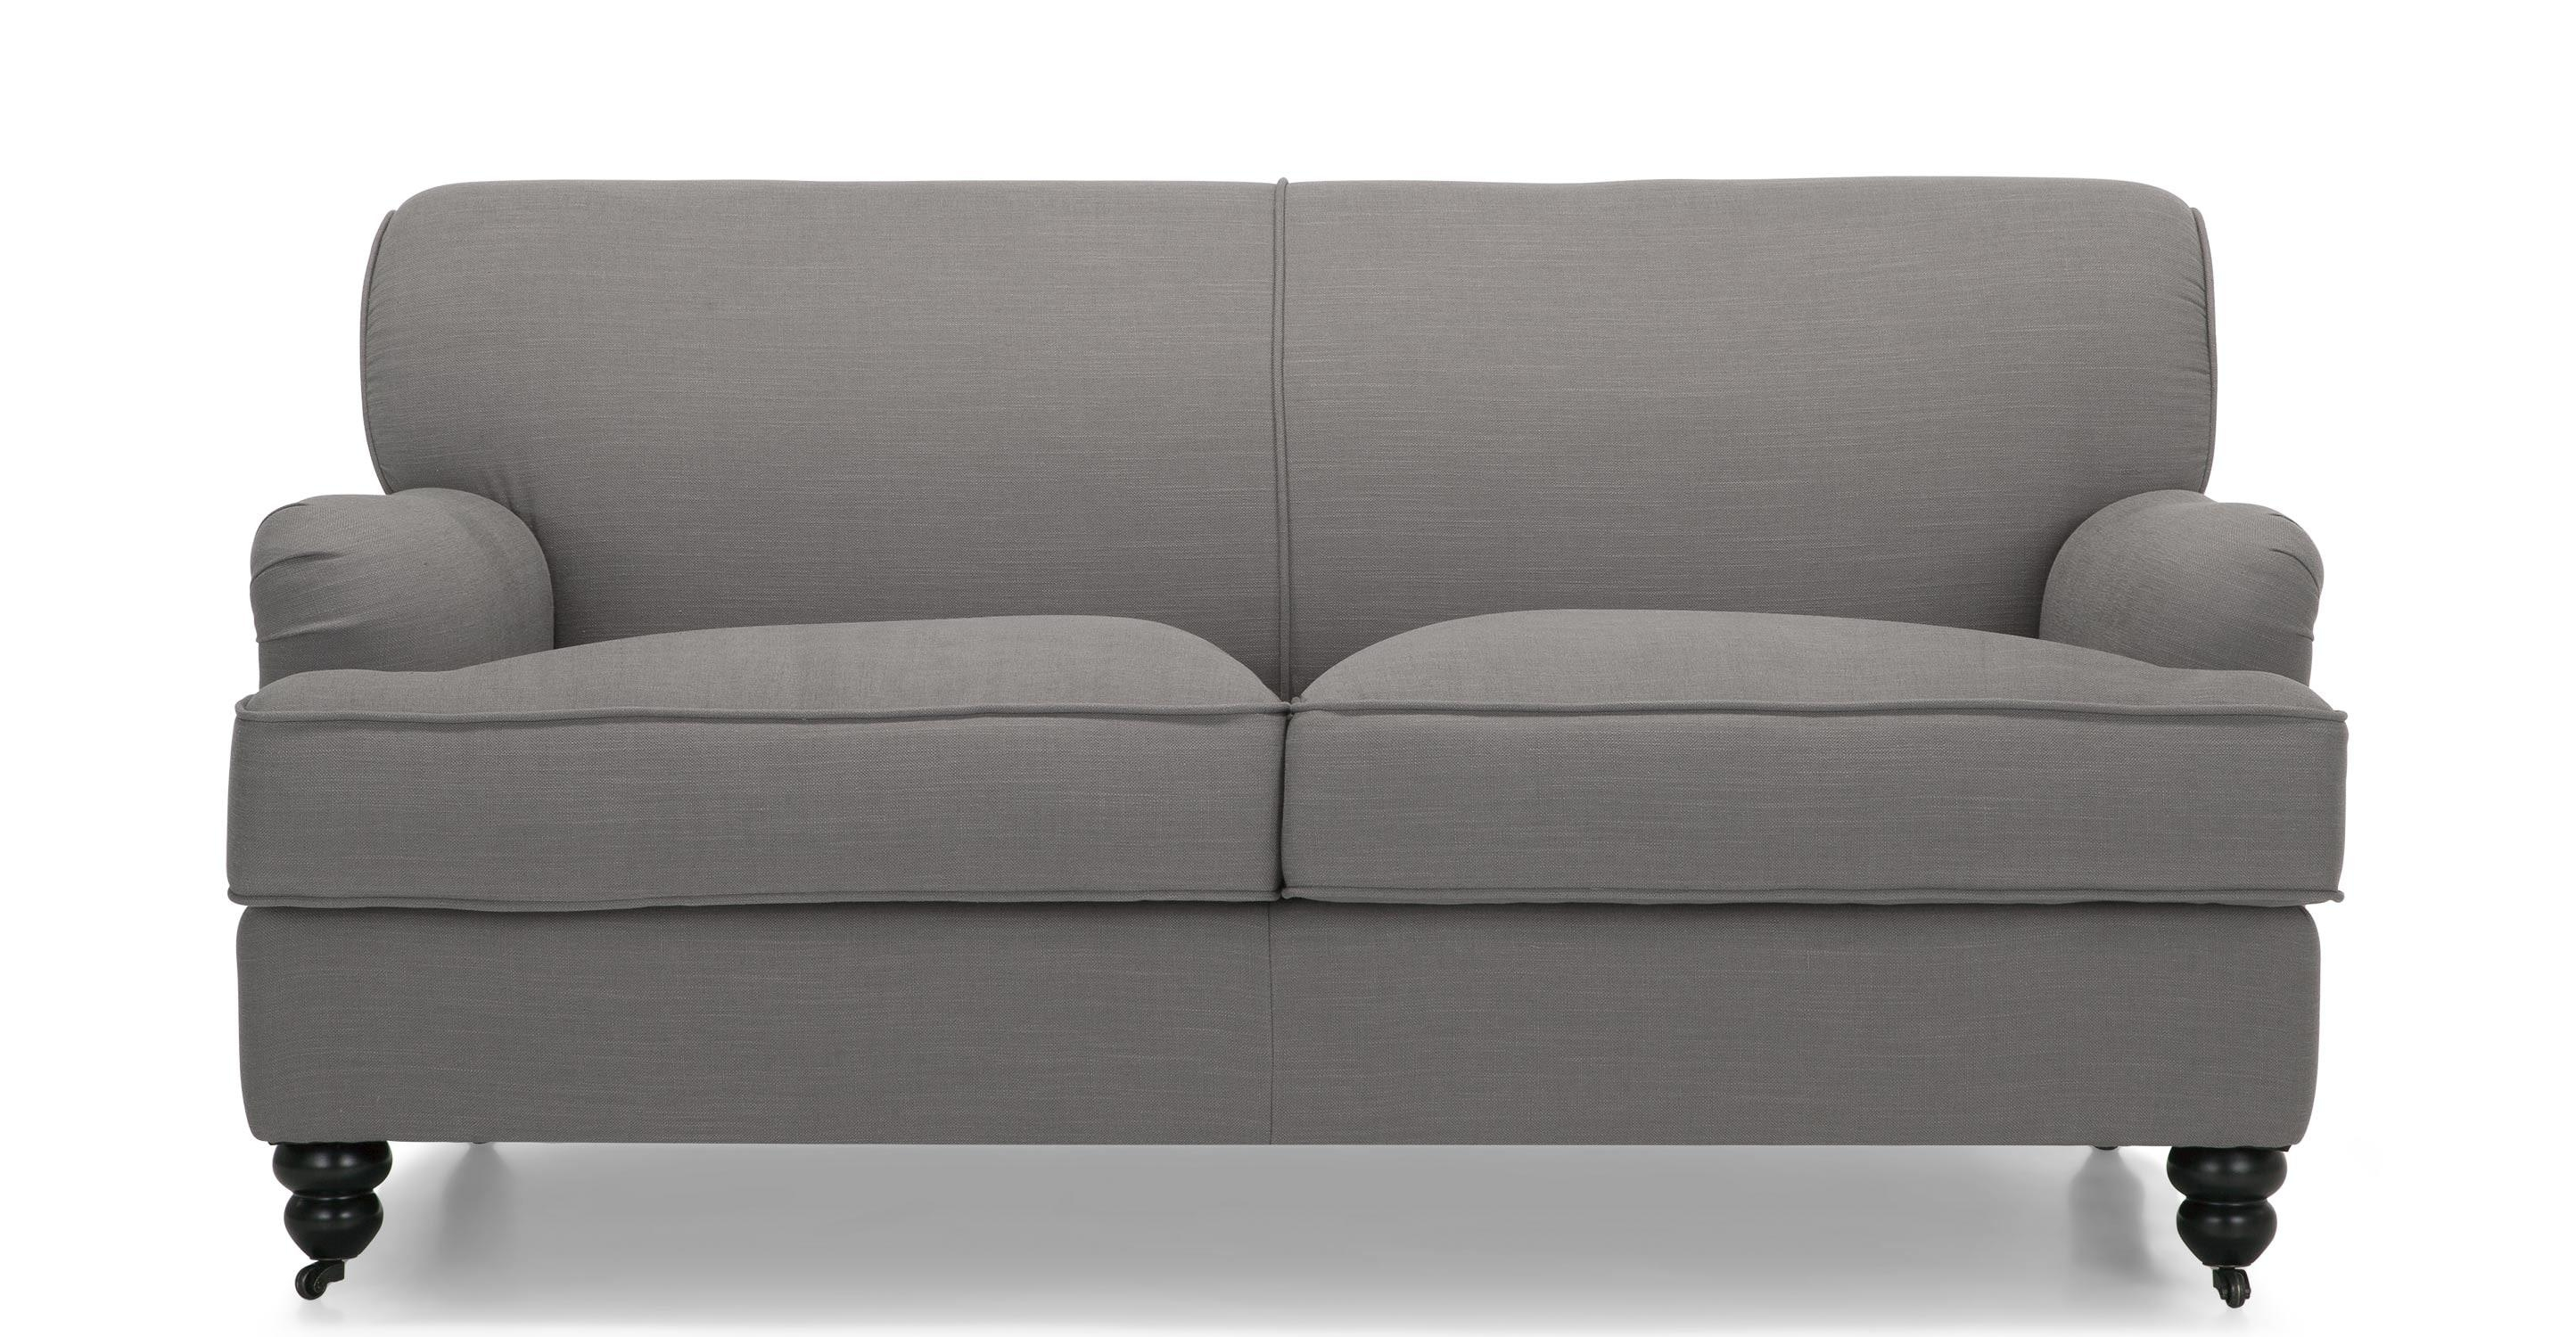 Orson 2 Seater Sofa, Graphite Grey | Made Within 2 Seater Sofas (View 4 of 20)